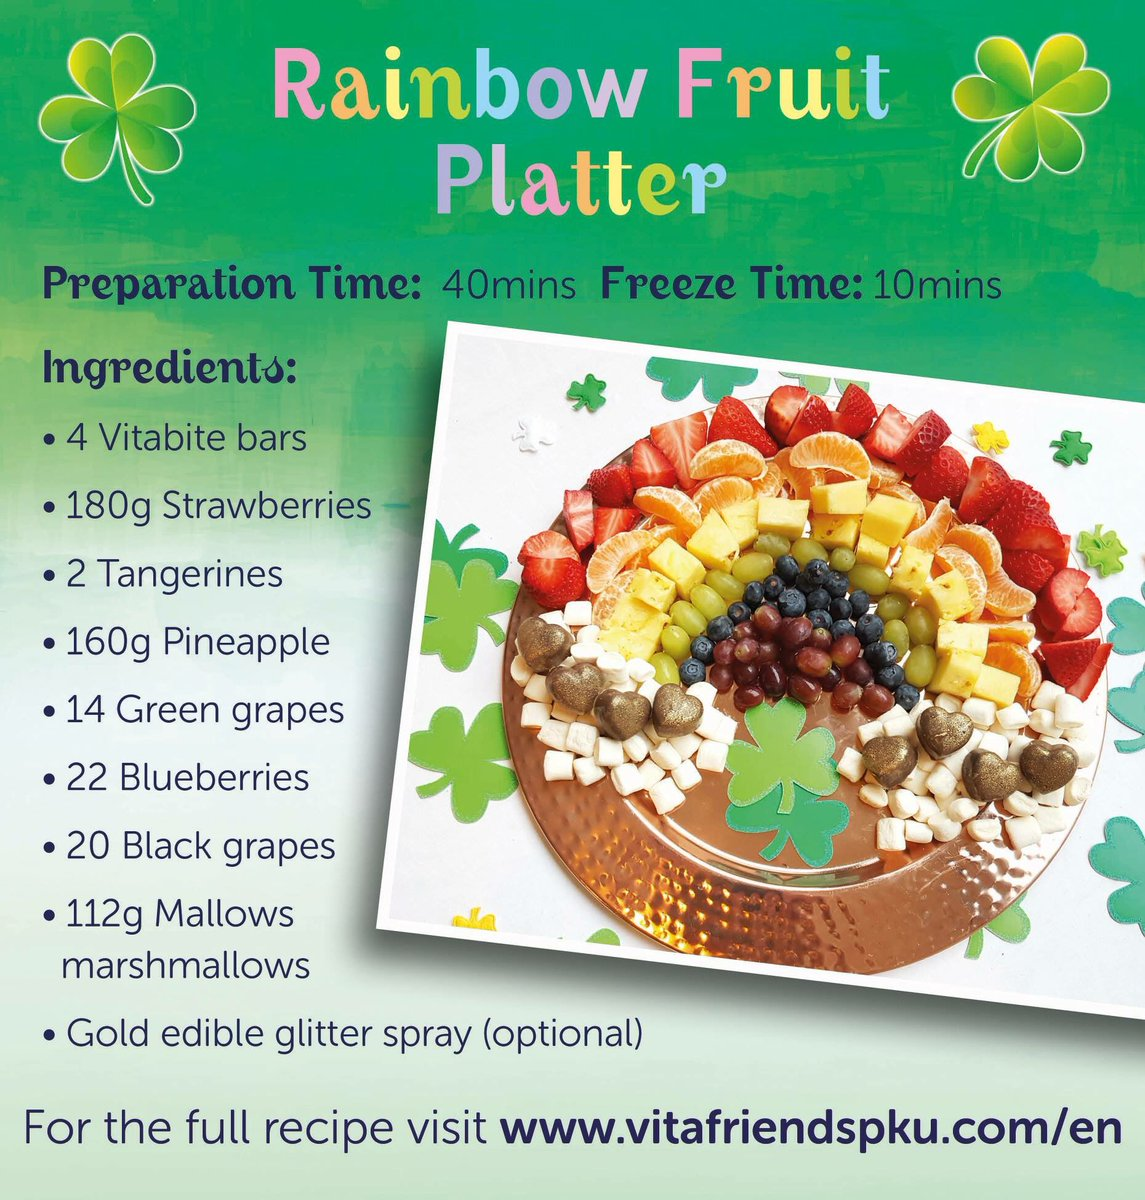 Happy St. Patrick&#39;s Day! Maybe if  you&#39;re lucky you&#39;ll find some gold at the end of the rainbow. Or you could make your own! Try this Rainbow Fruit Platter complete with clouds and gold!  Recipe is here:  https://www. vitafriendspku.com/en/recipes/rai nbow-fruit-platter/ &nbsp; …  #pku #pkurecipes <br>http://pic.twitter.com/lmvoBDBAm4